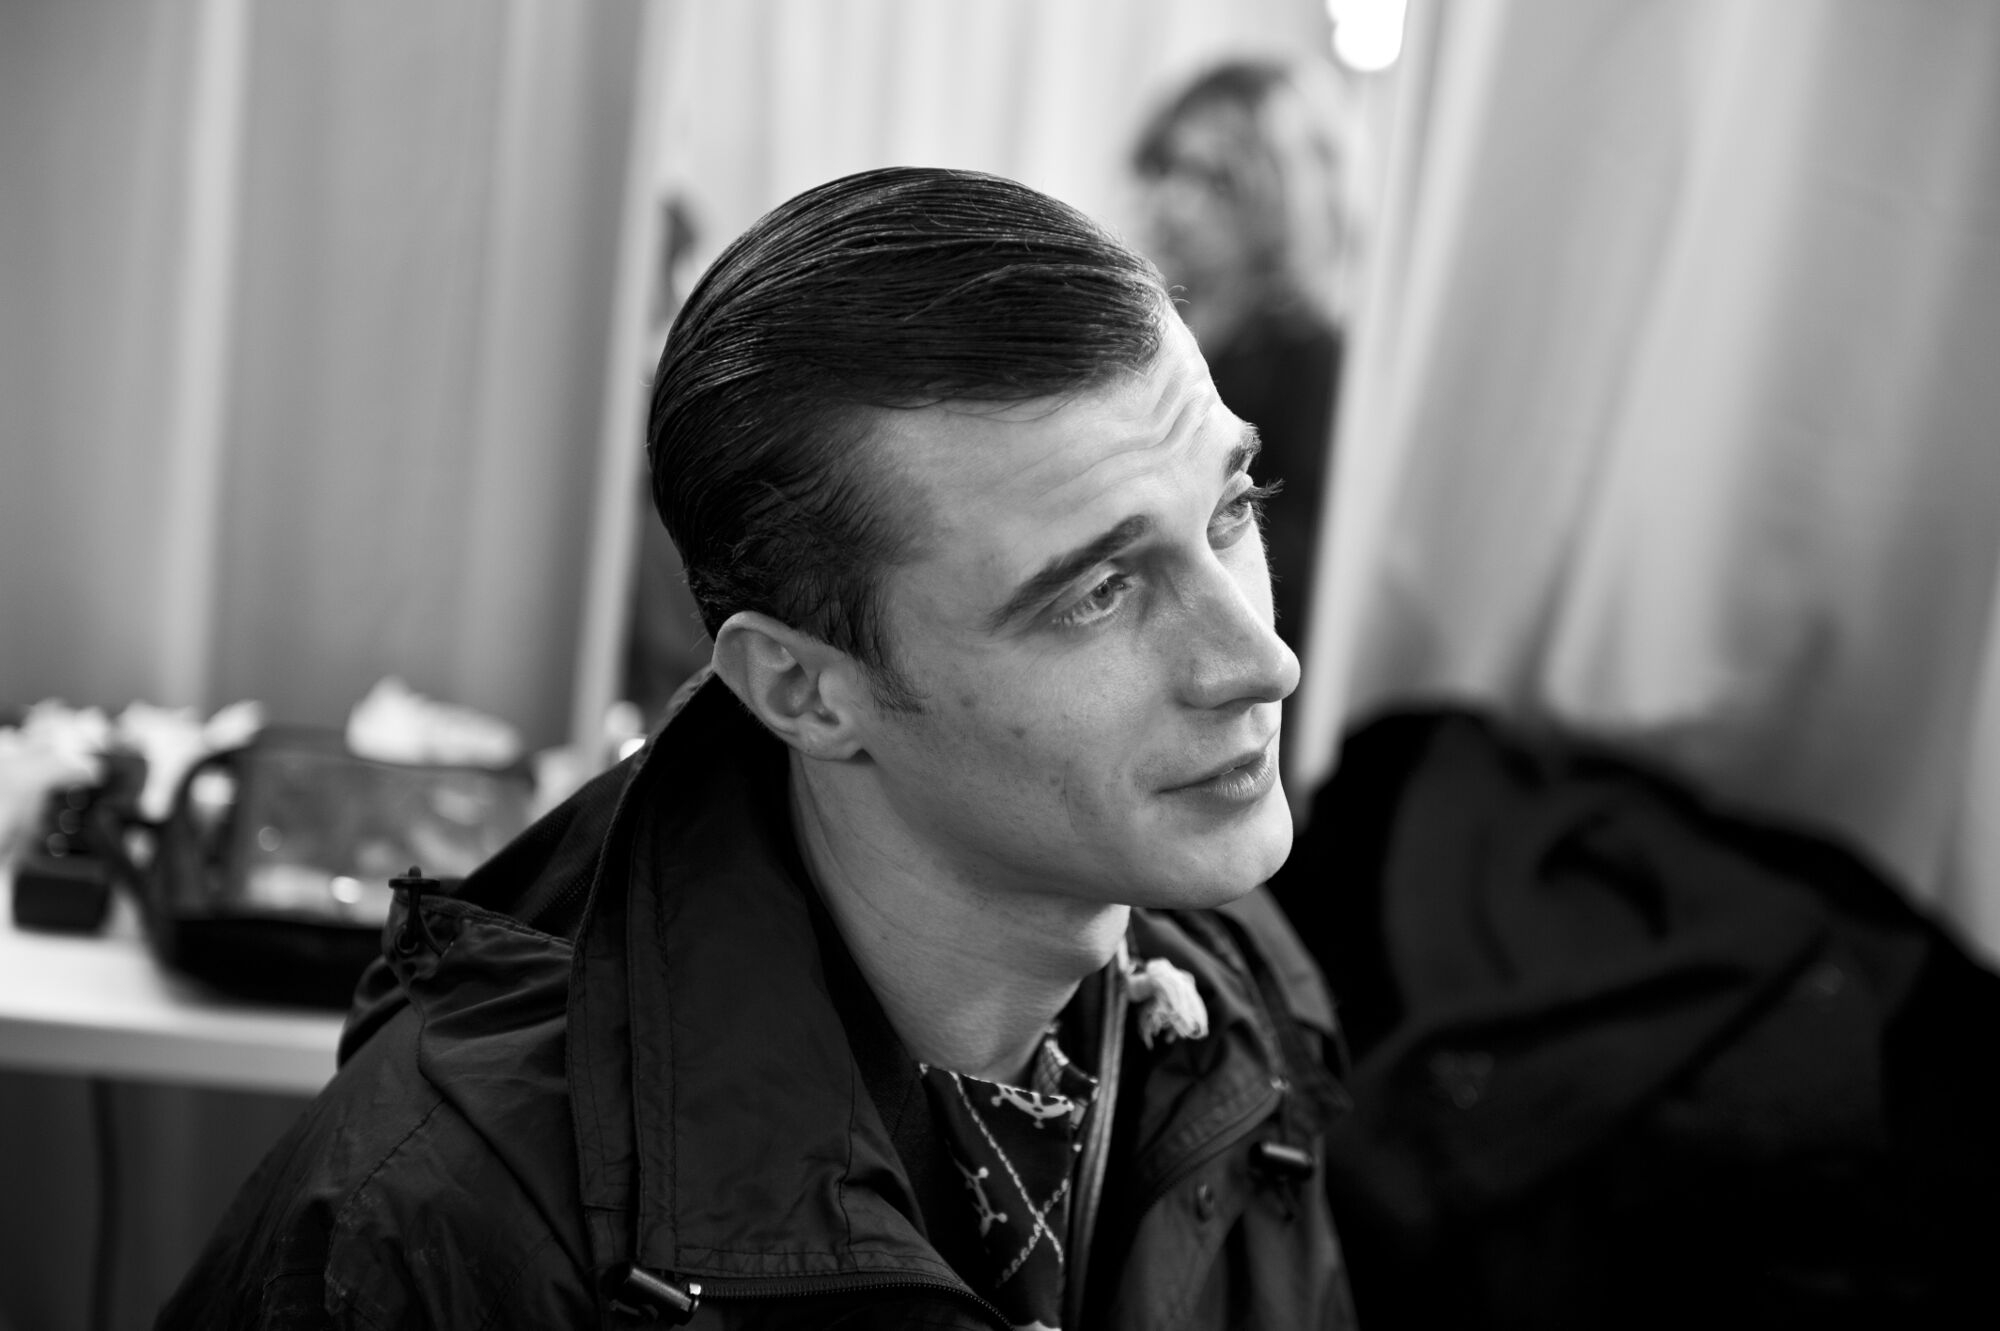 Man Model Corneliani Backstage